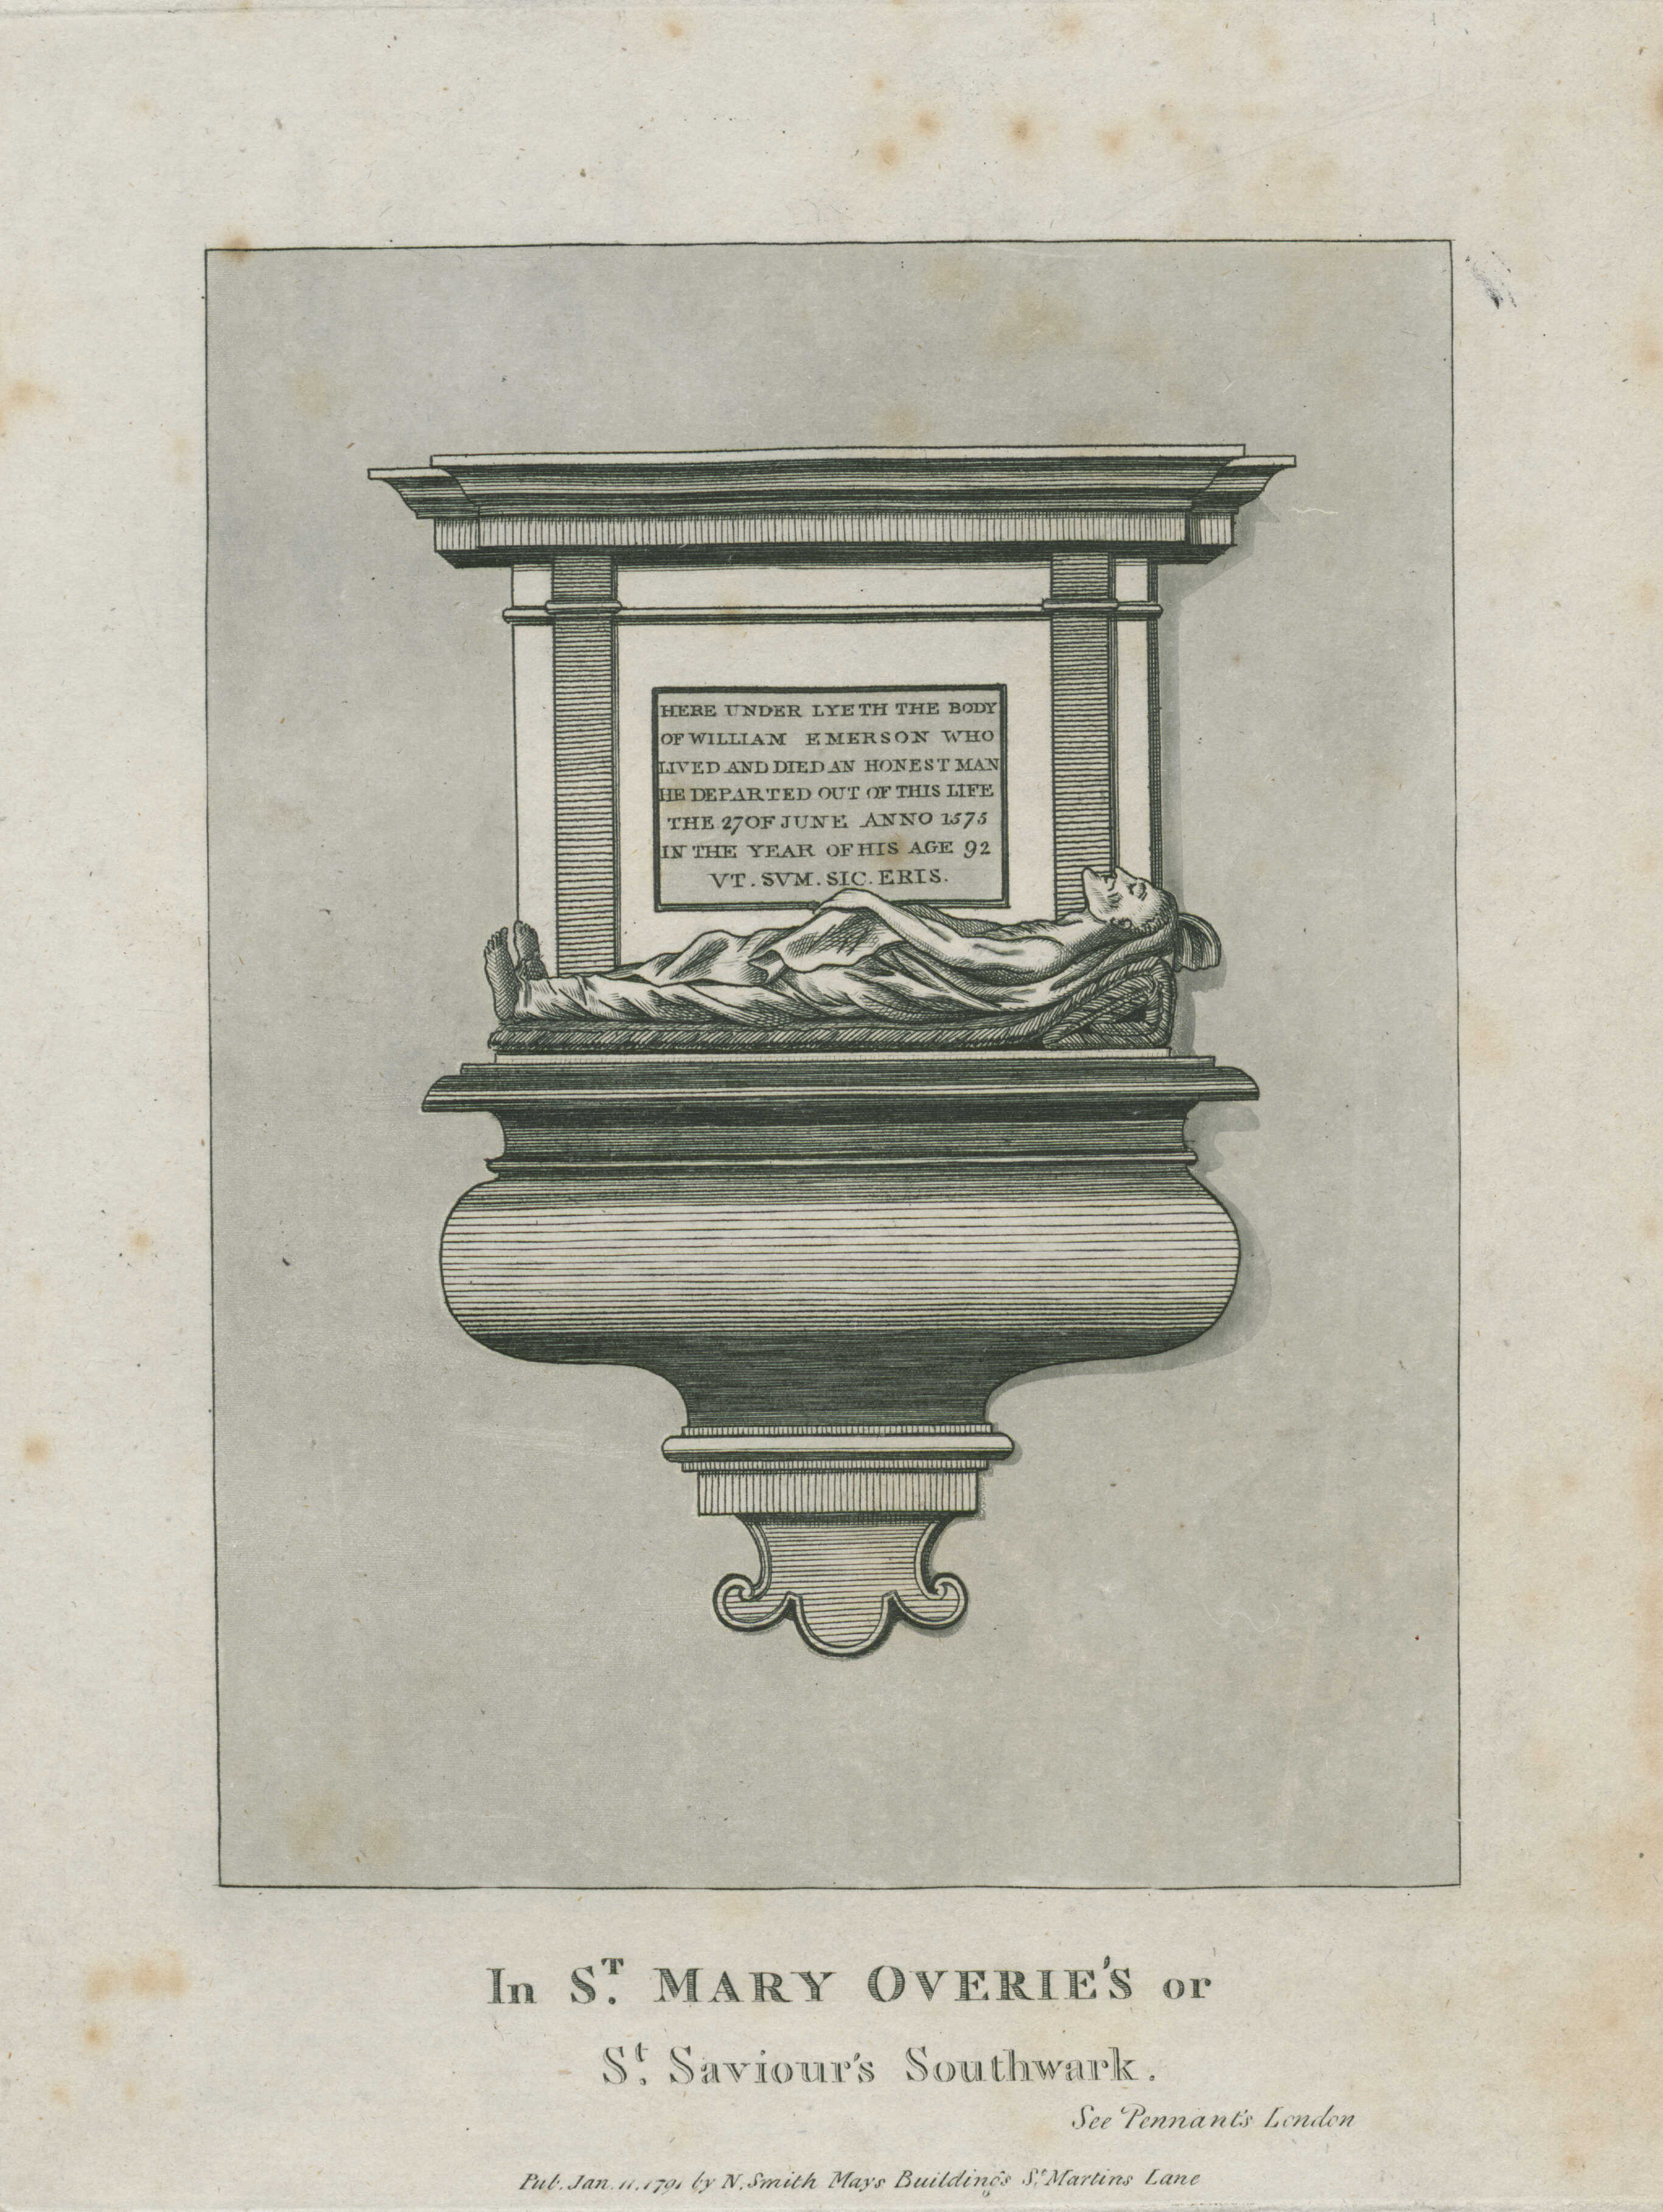 3-in-st-mary-overies-or-st-saviours-southwark-monument-for-william-emerson